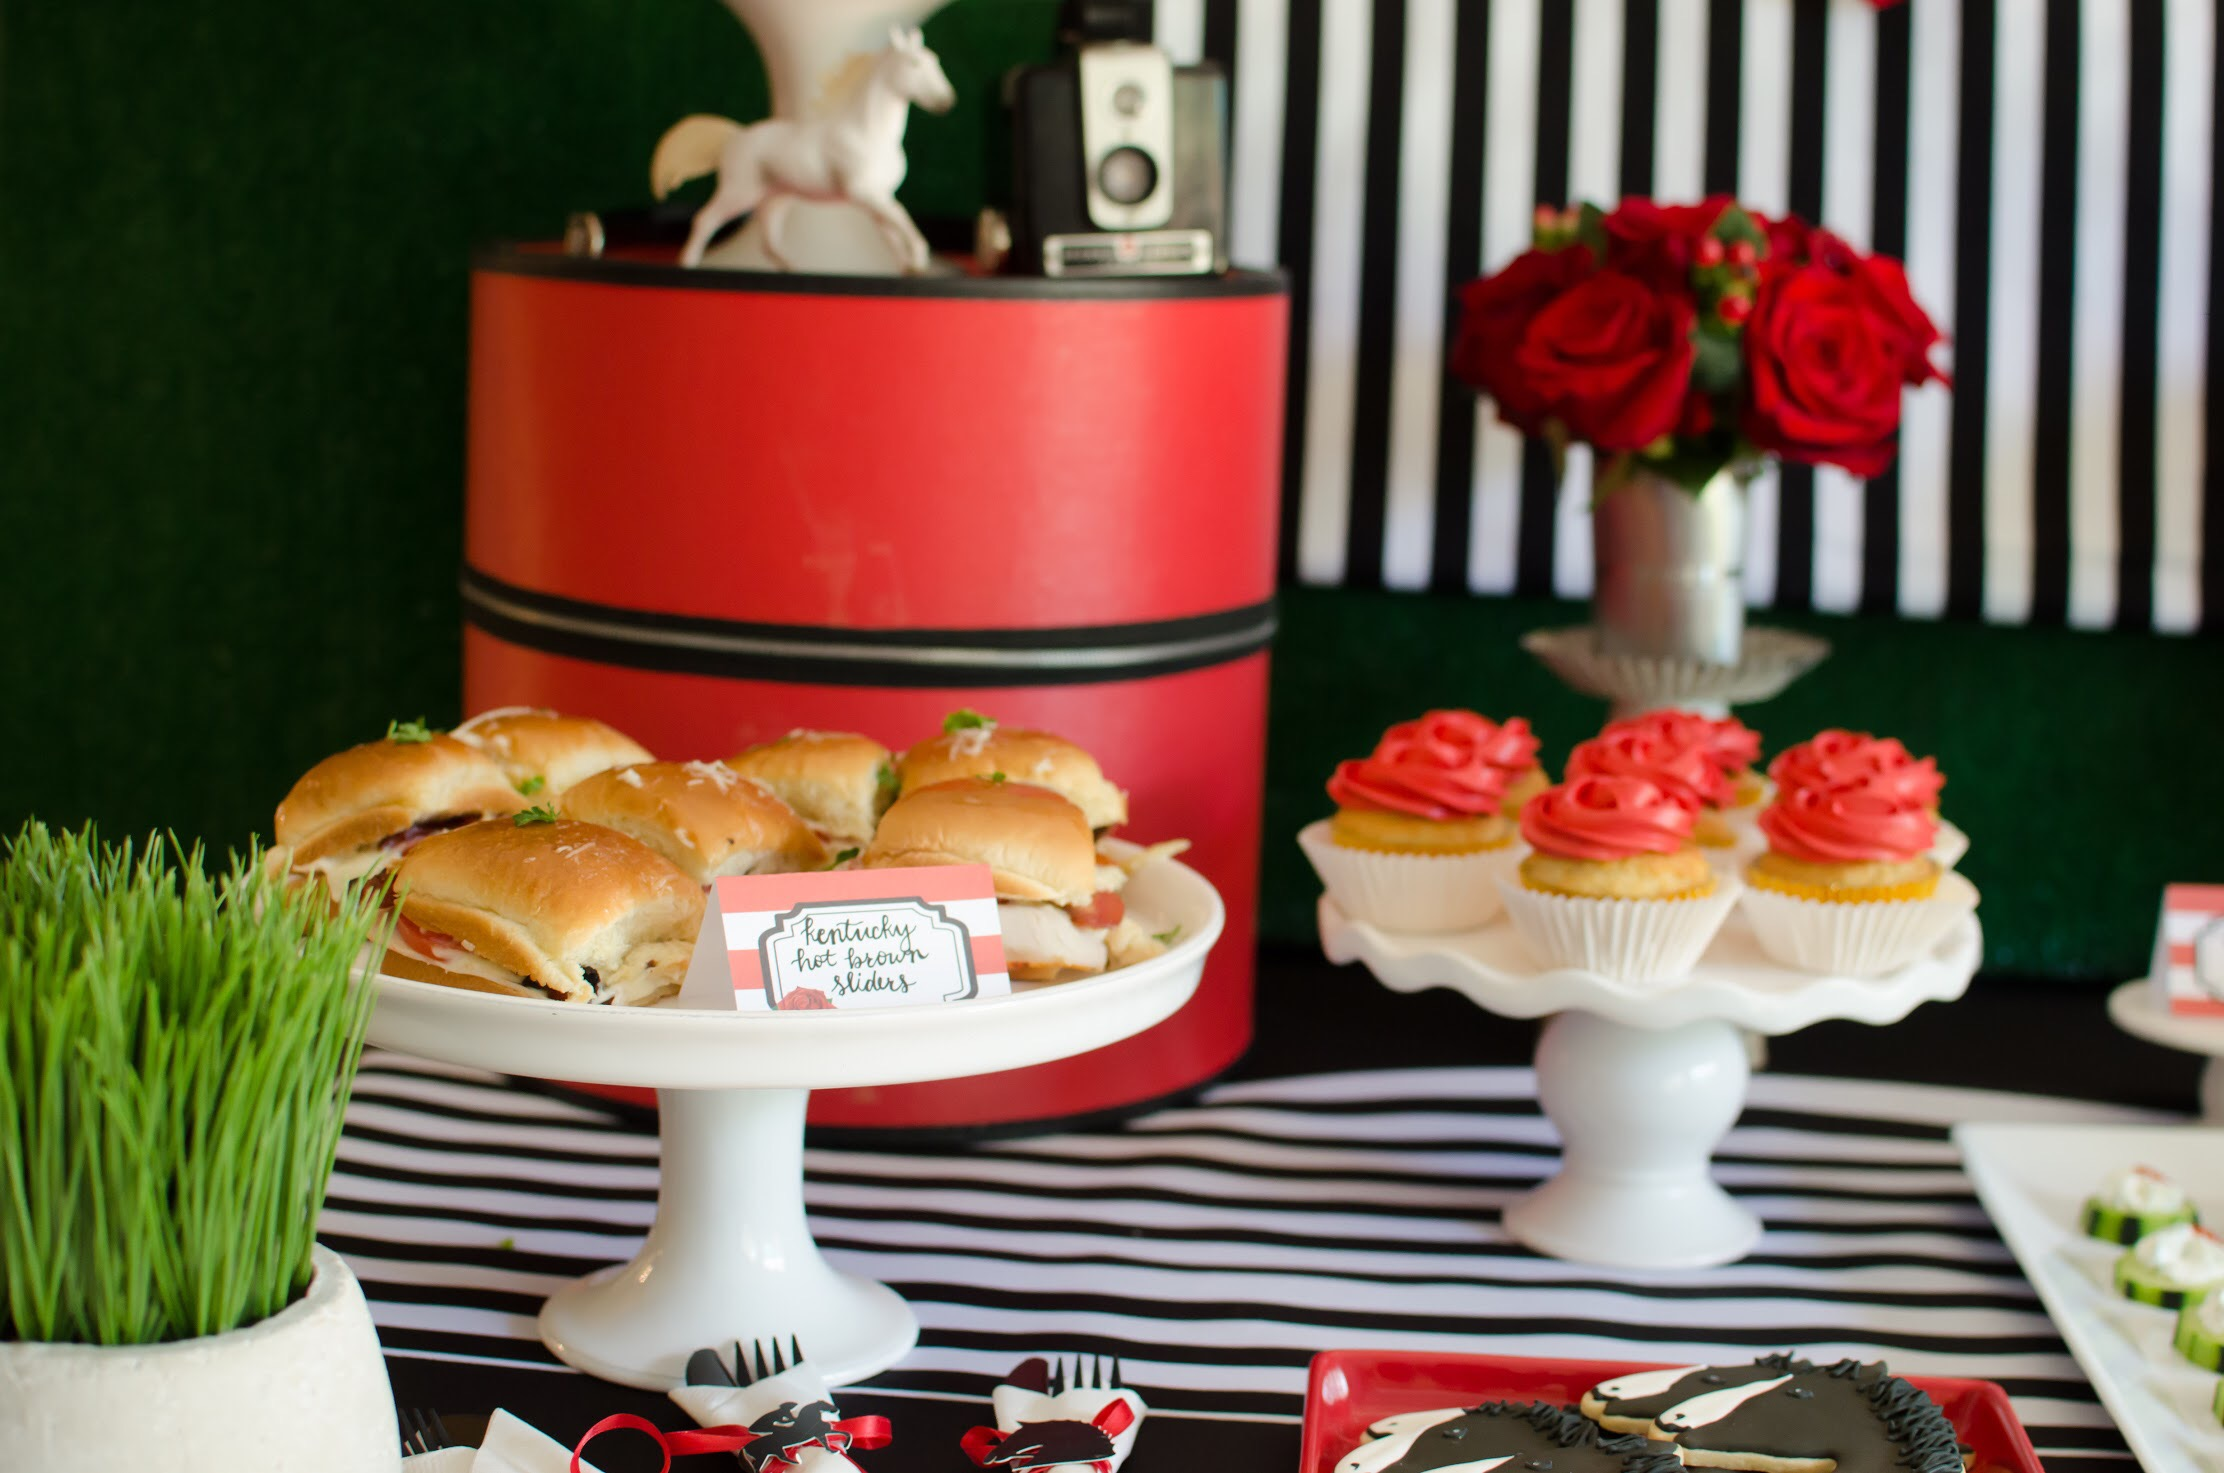 Food Ideas for a Kentucky Derby Party from Mint Event Design www.minteventdesign.com